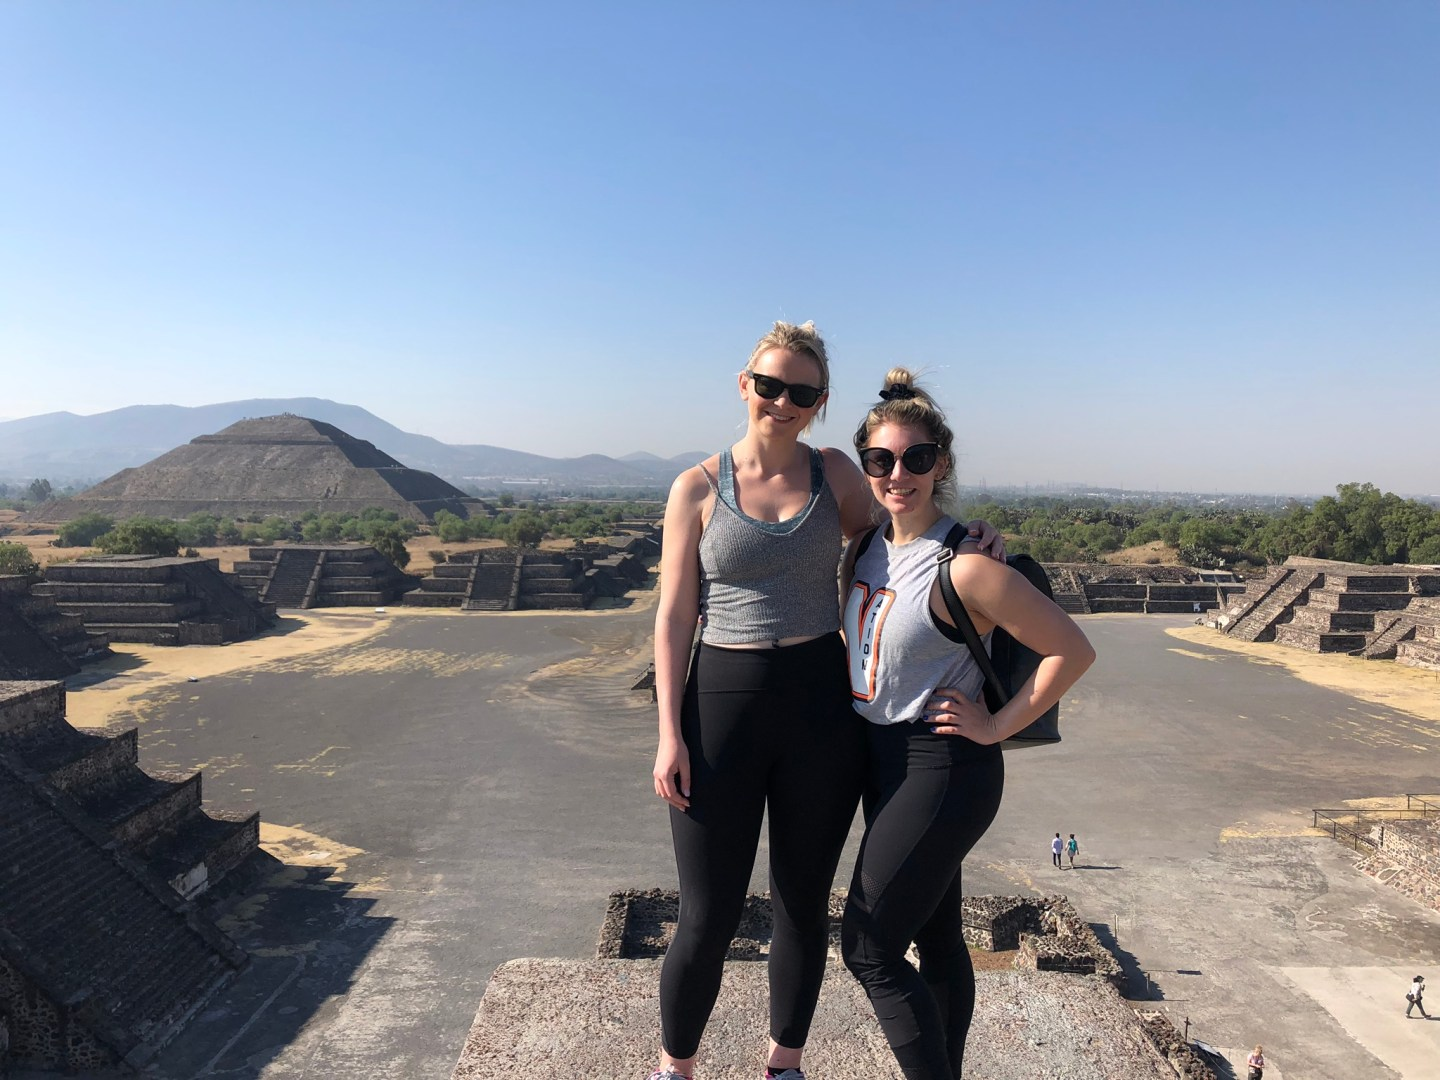 Girls on top of the Pyramid of the Moon